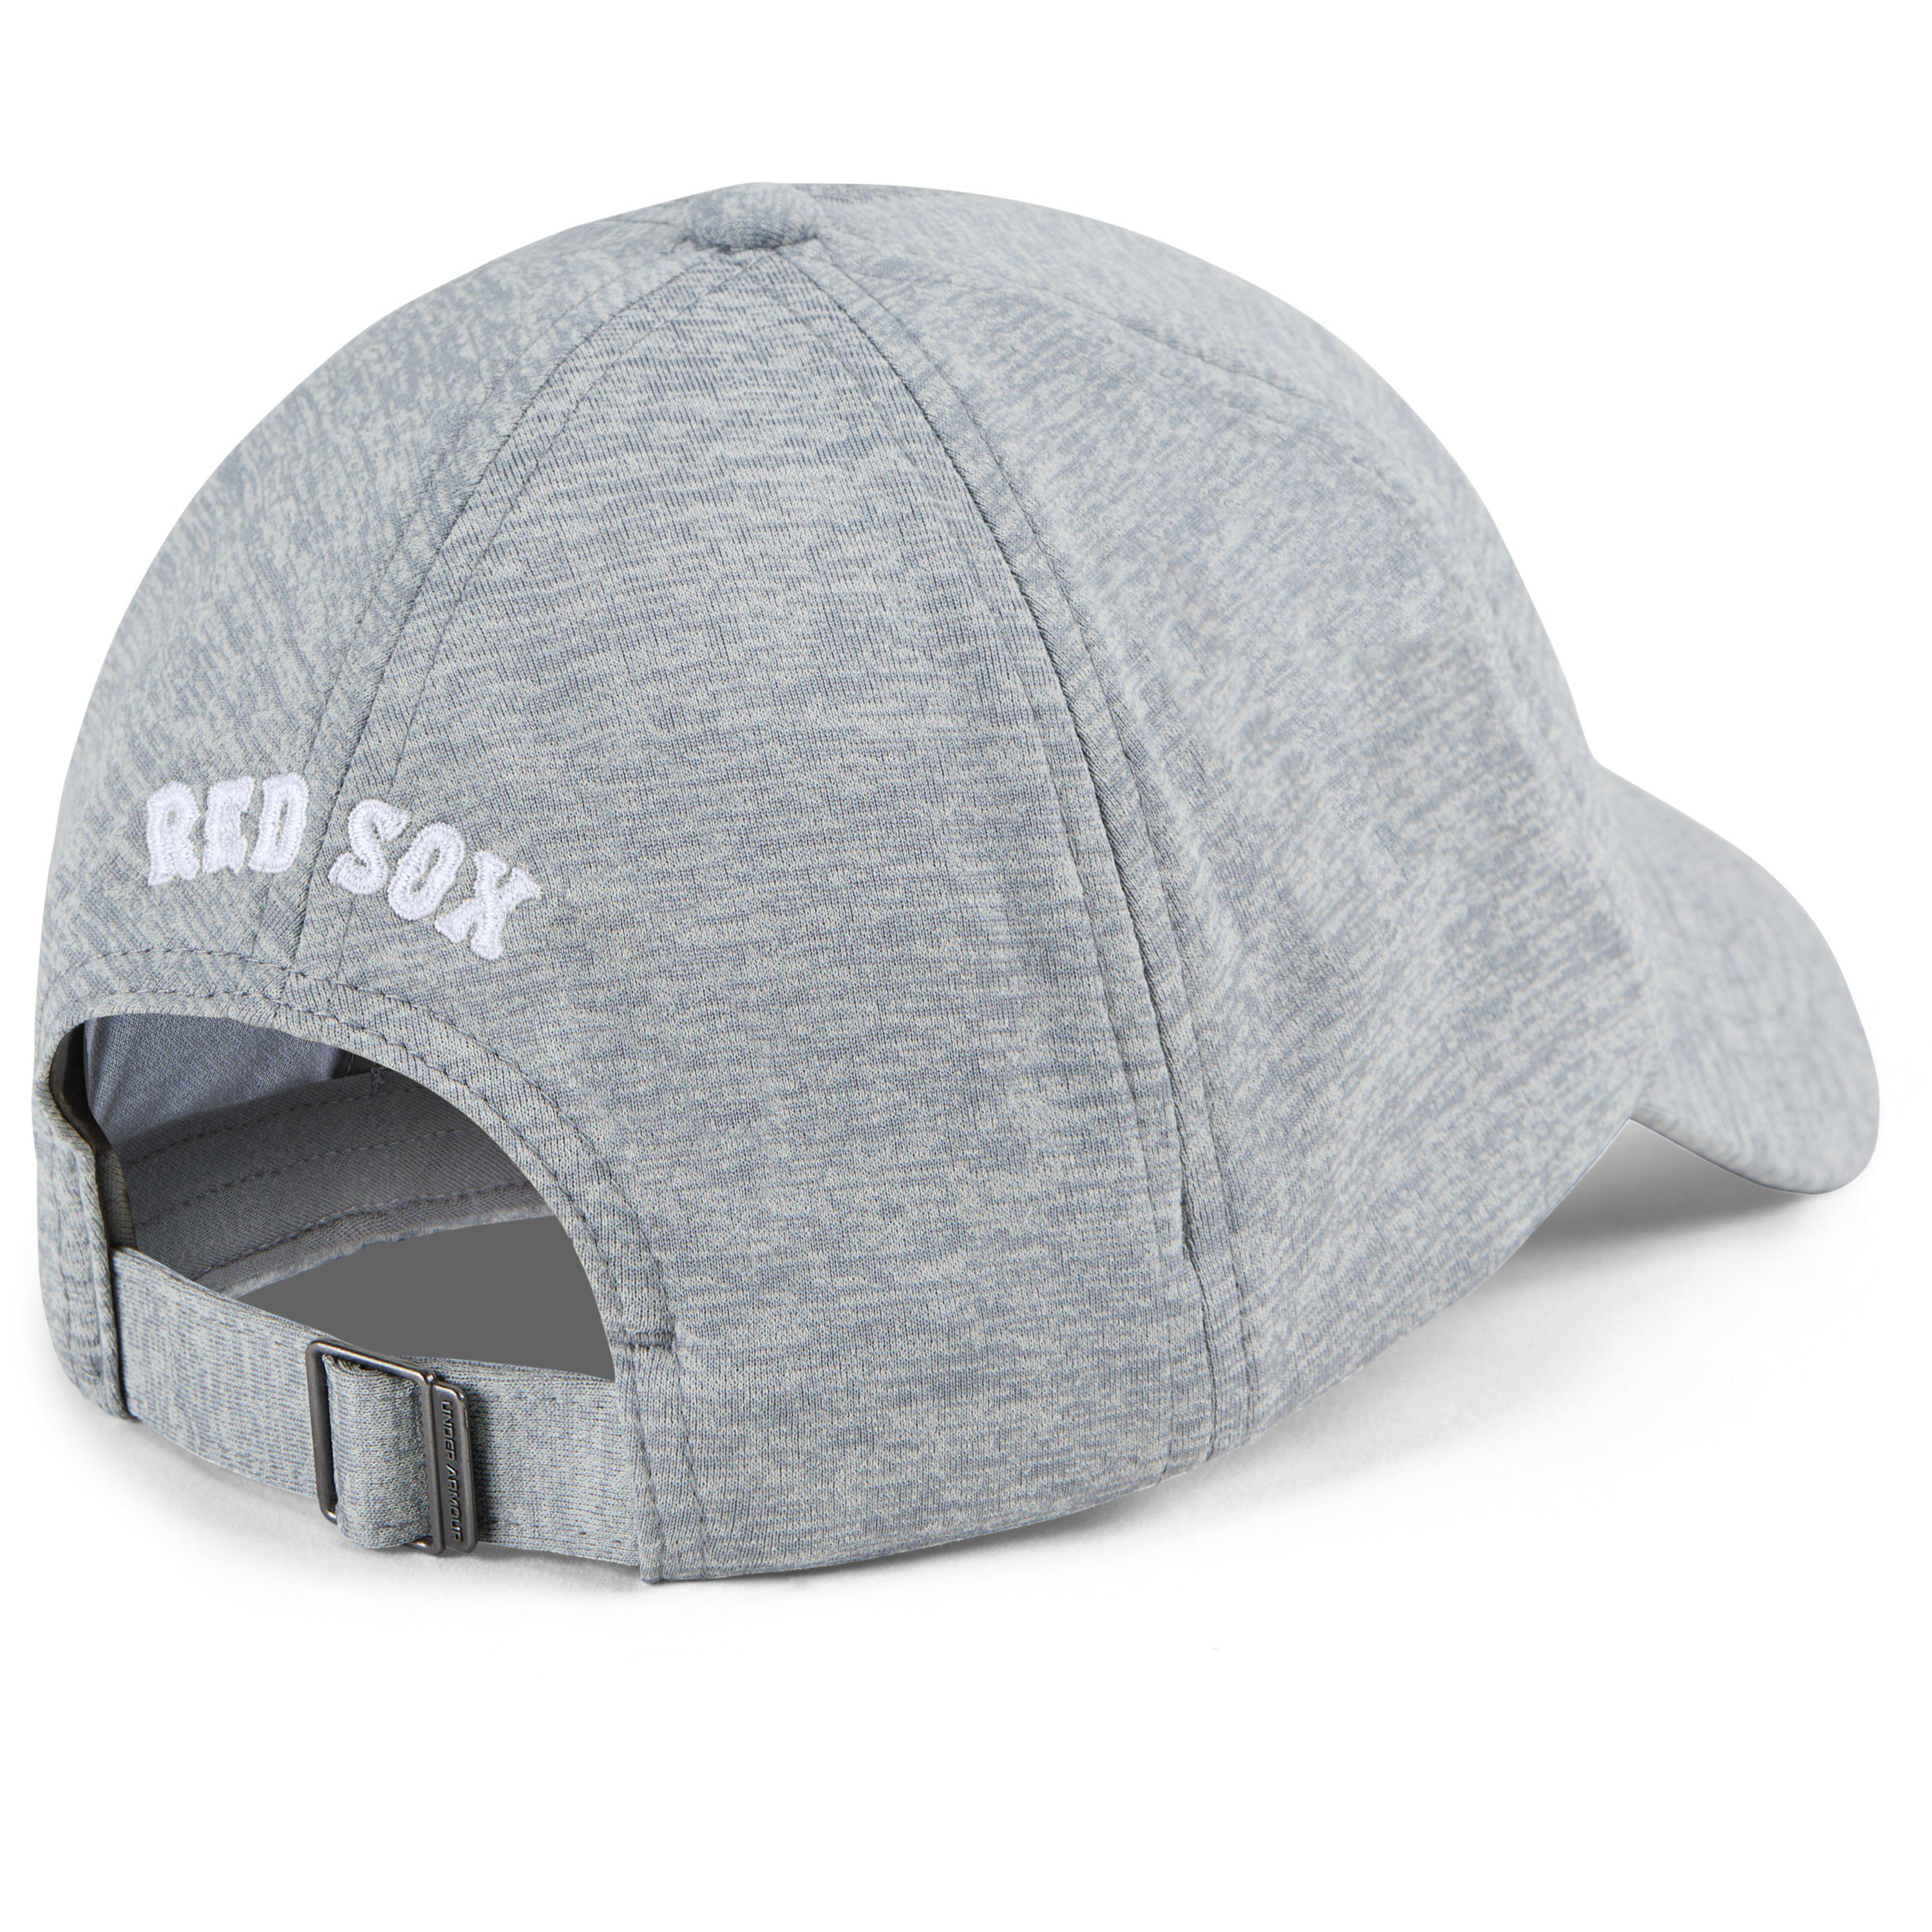 save off 86979 90be0 ... shop under armour gray womens mlb renegade twist cap for men lyst. view  fullscreen 0db86